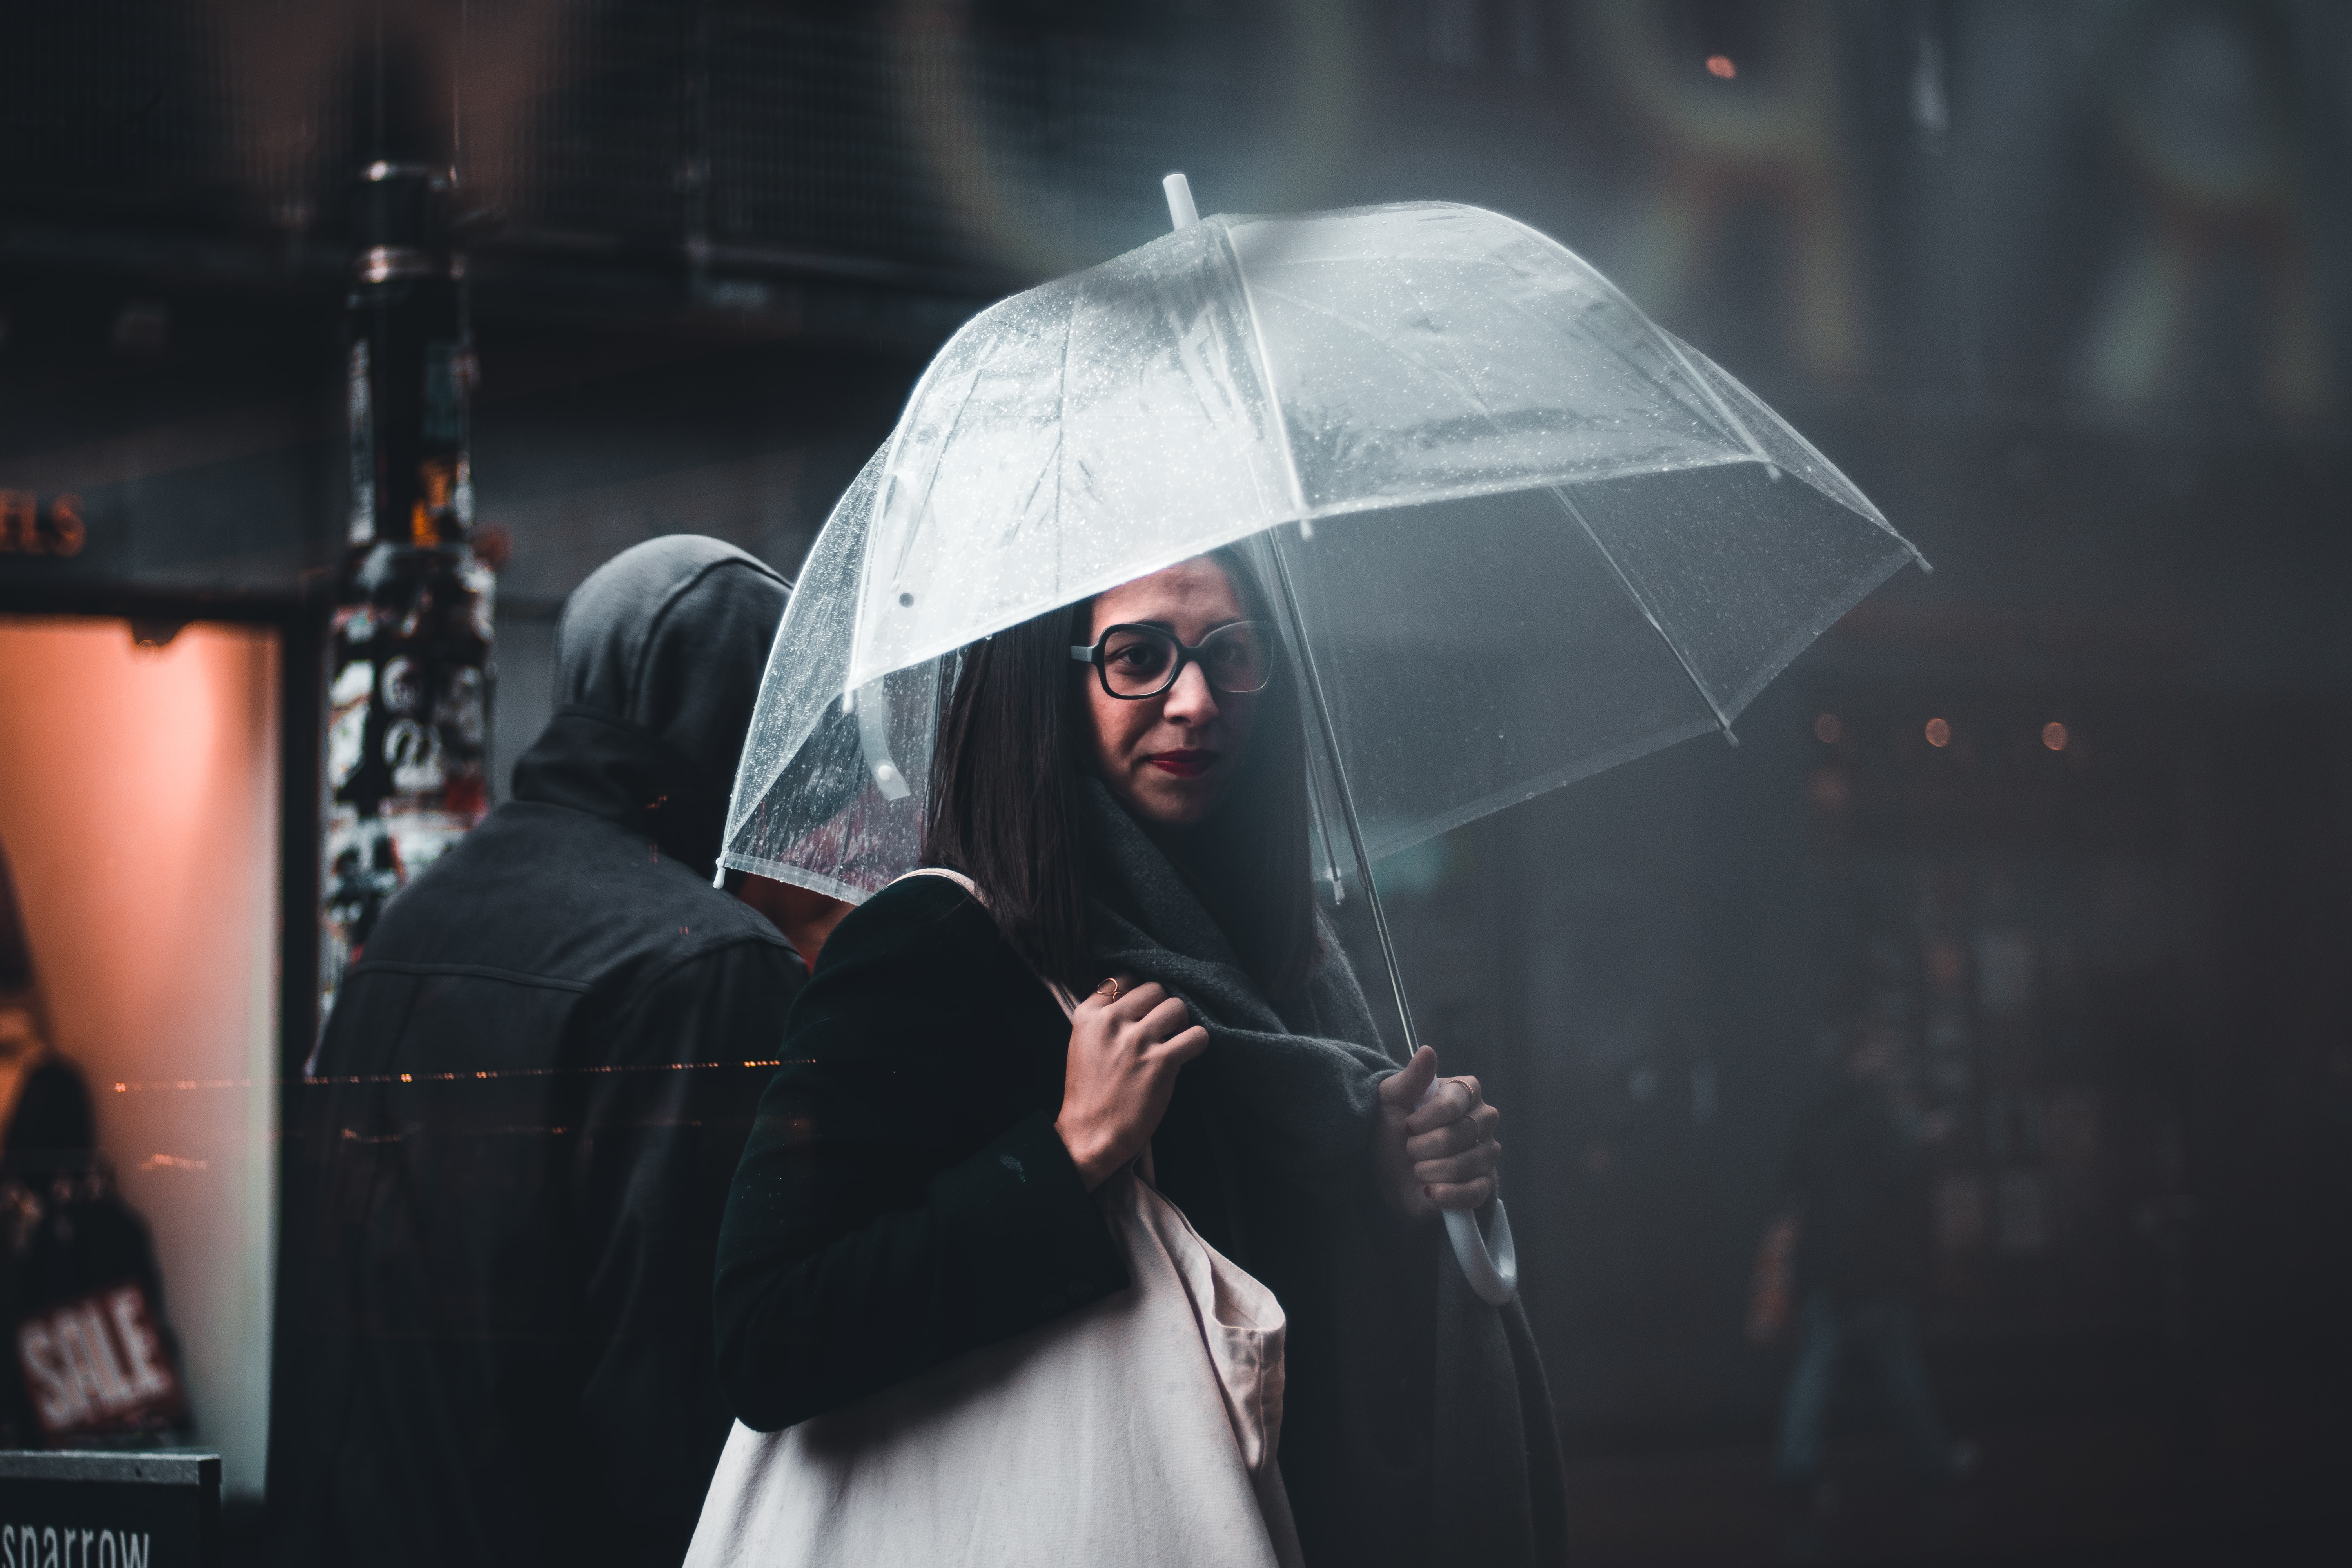 selective focus photography of woman carrying white bag while holding clear umbrella near person wearing hoodie outdoor